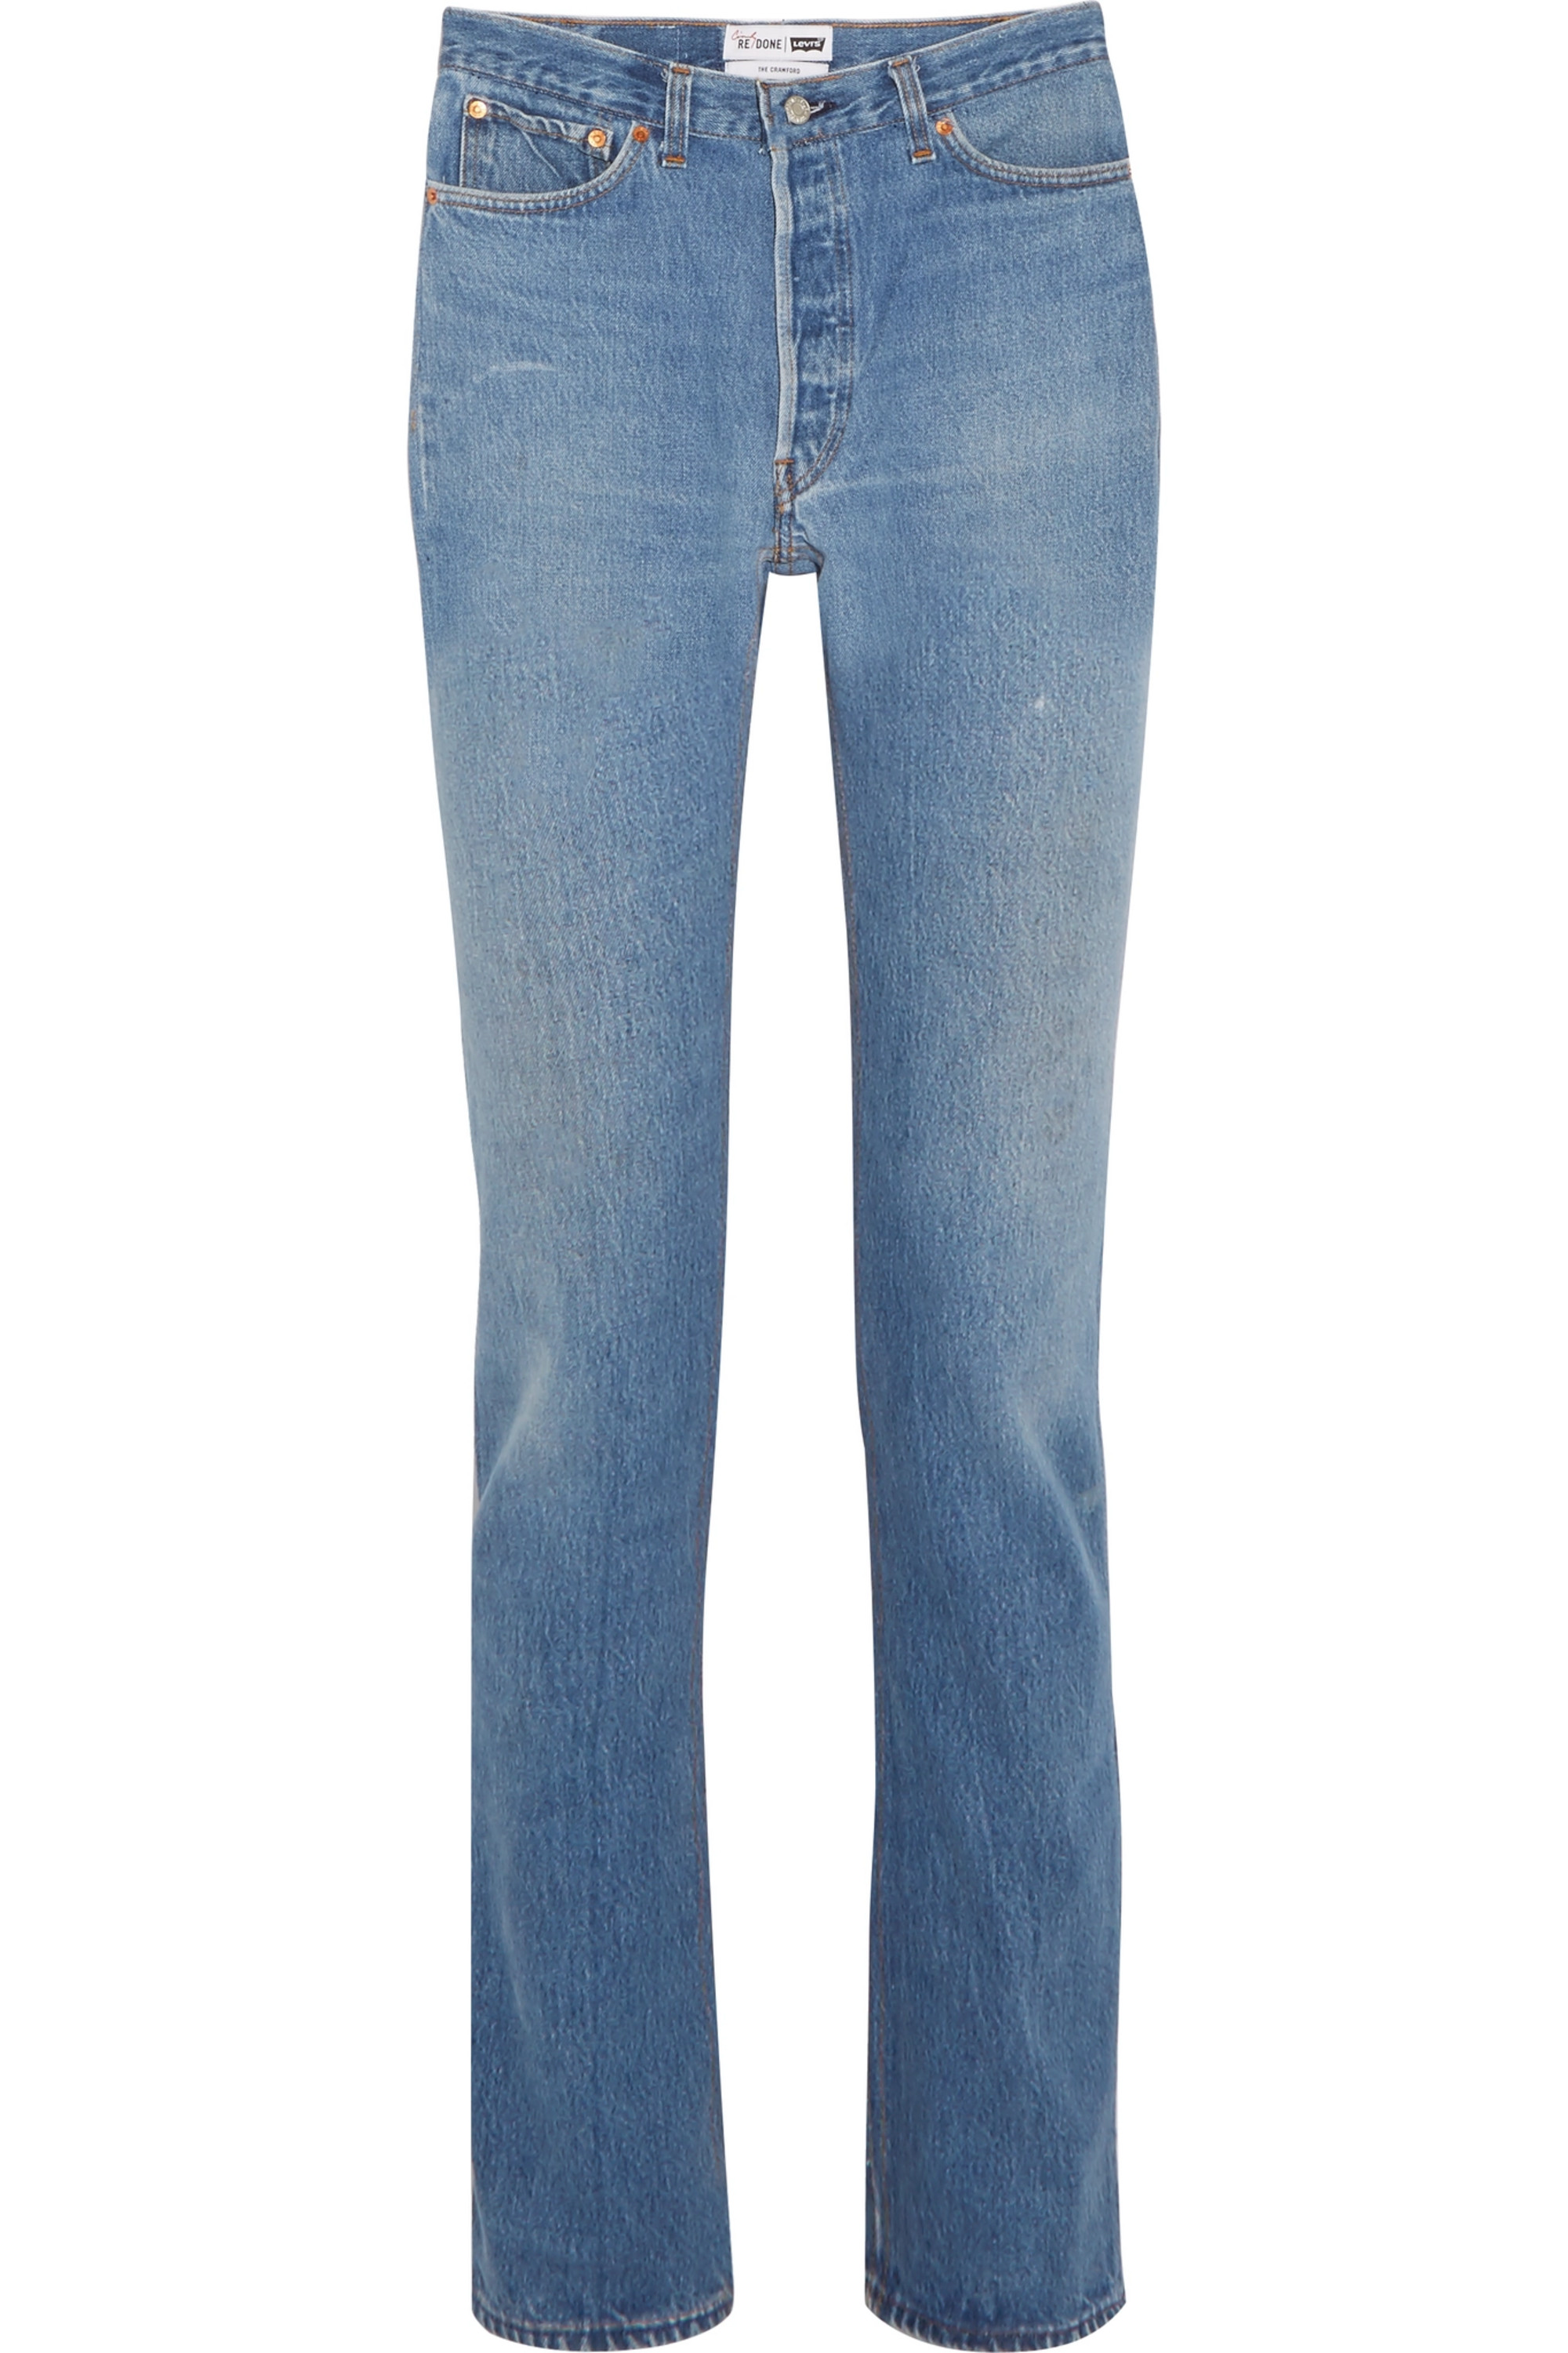 RE/DONE + Cindy Crawford The Crawford high-rise straight-leg jeans